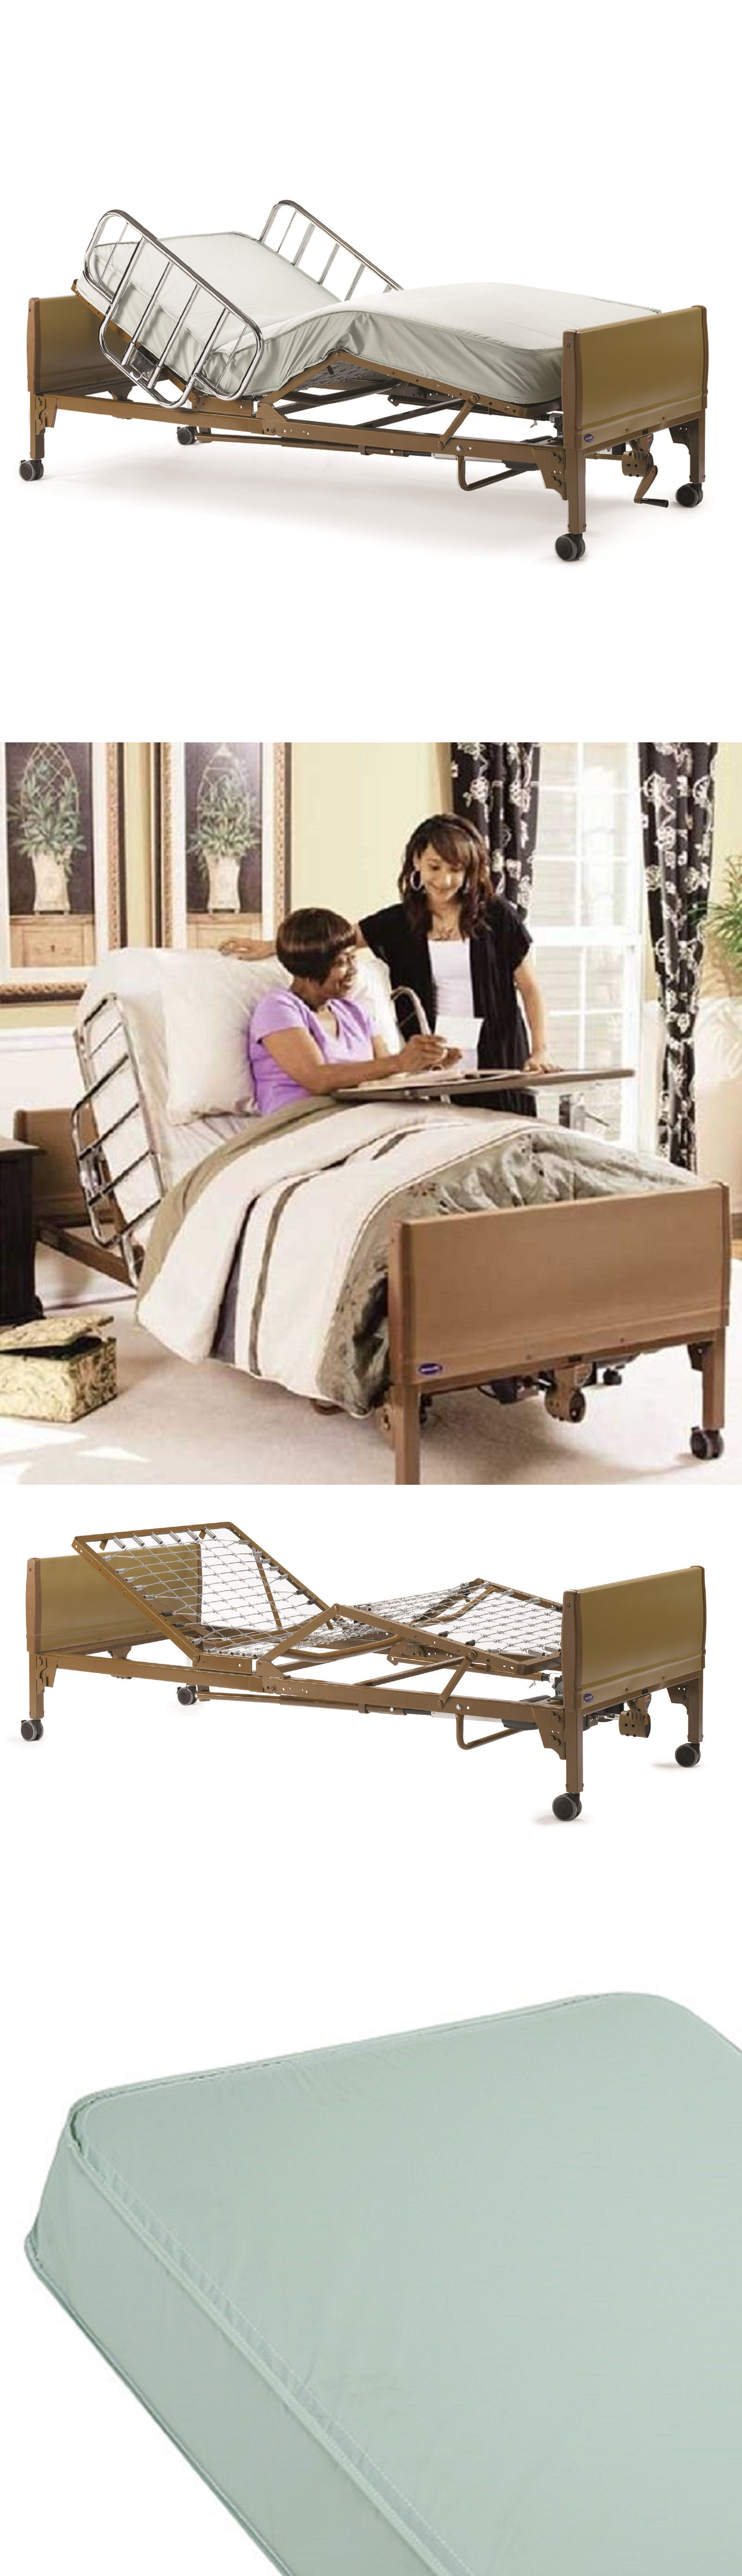 Other Mobility and Disability: Hospital Bed | Full Electric | Invacare |  Free Mattress And